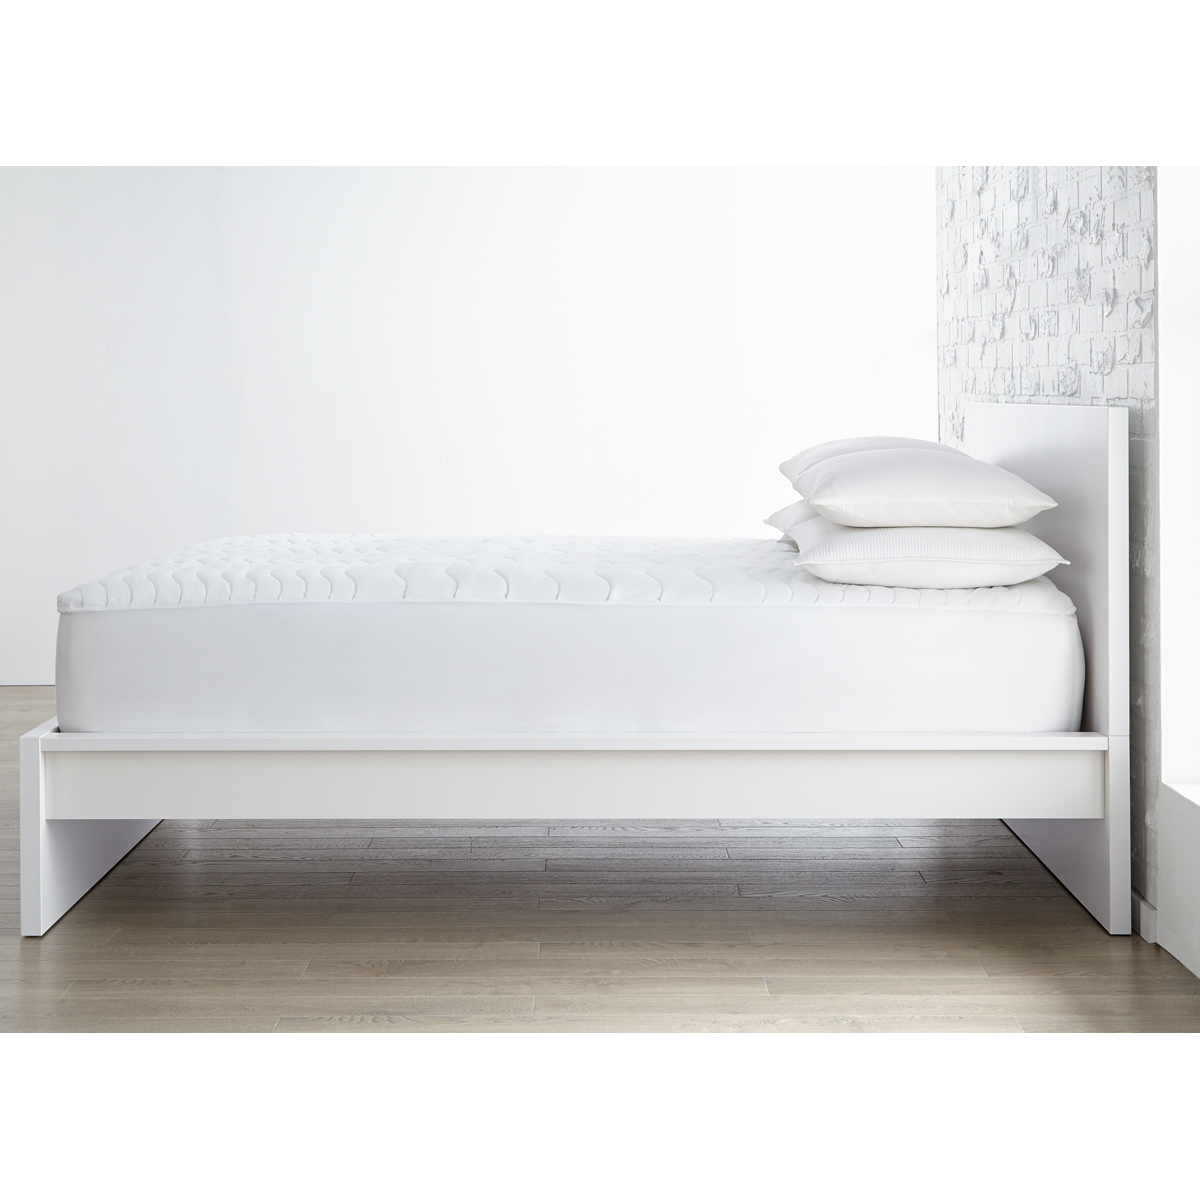 couvre matelas chauffant sunbeam health restore grand lit 2 places 7923 030 000 cn sunbeam. Black Bedroom Furniture Sets. Home Design Ideas